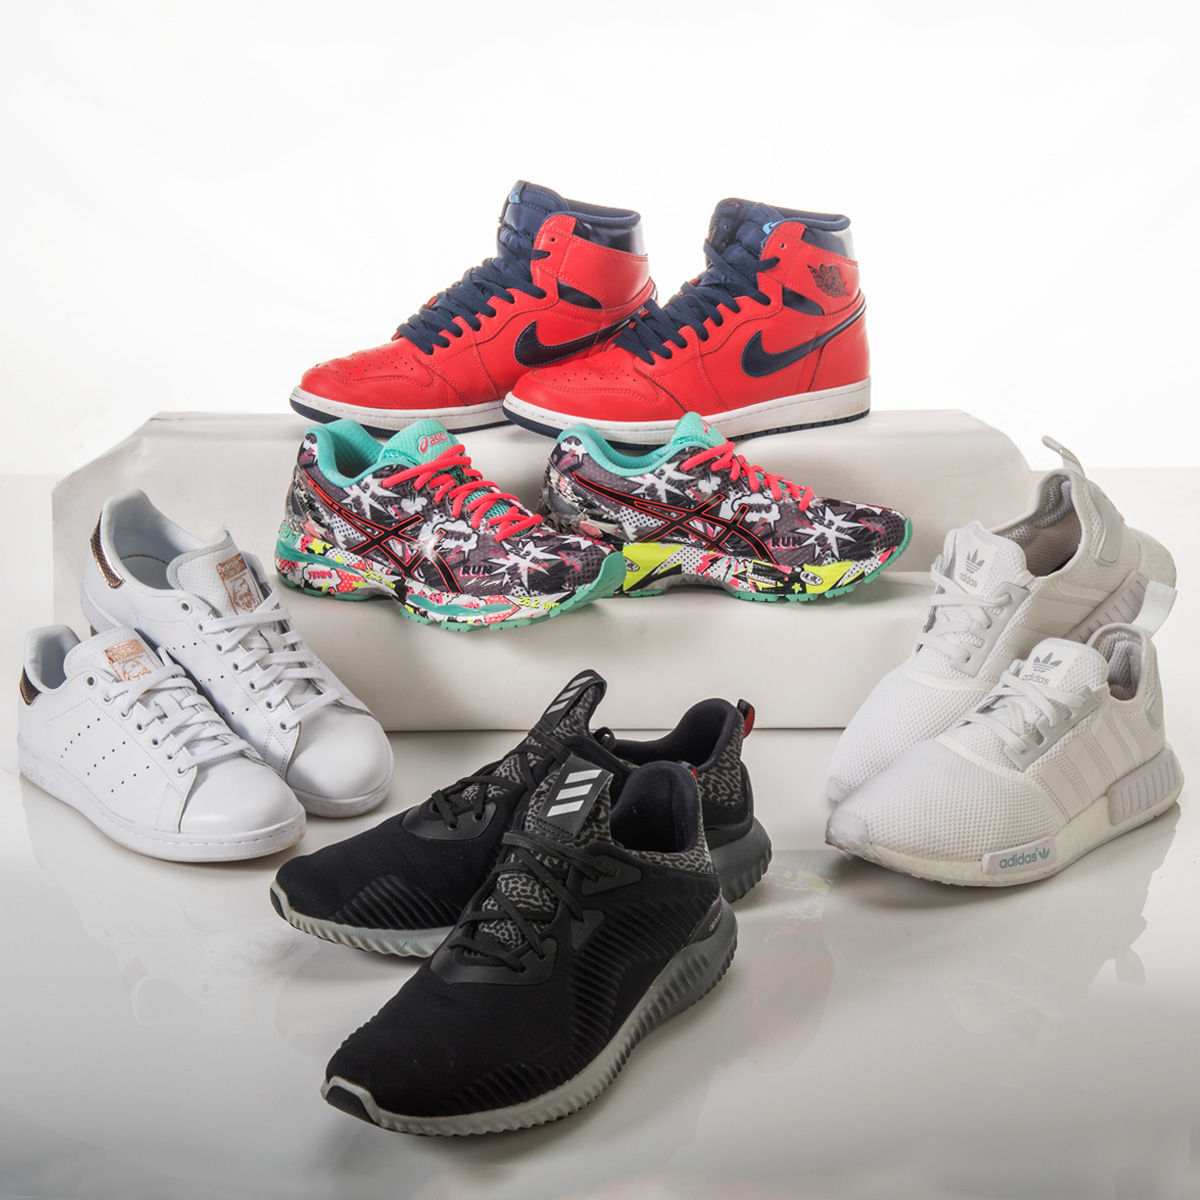 Eastbay Solemates Its Shoe Love  Eastbay Blog  Eastbay